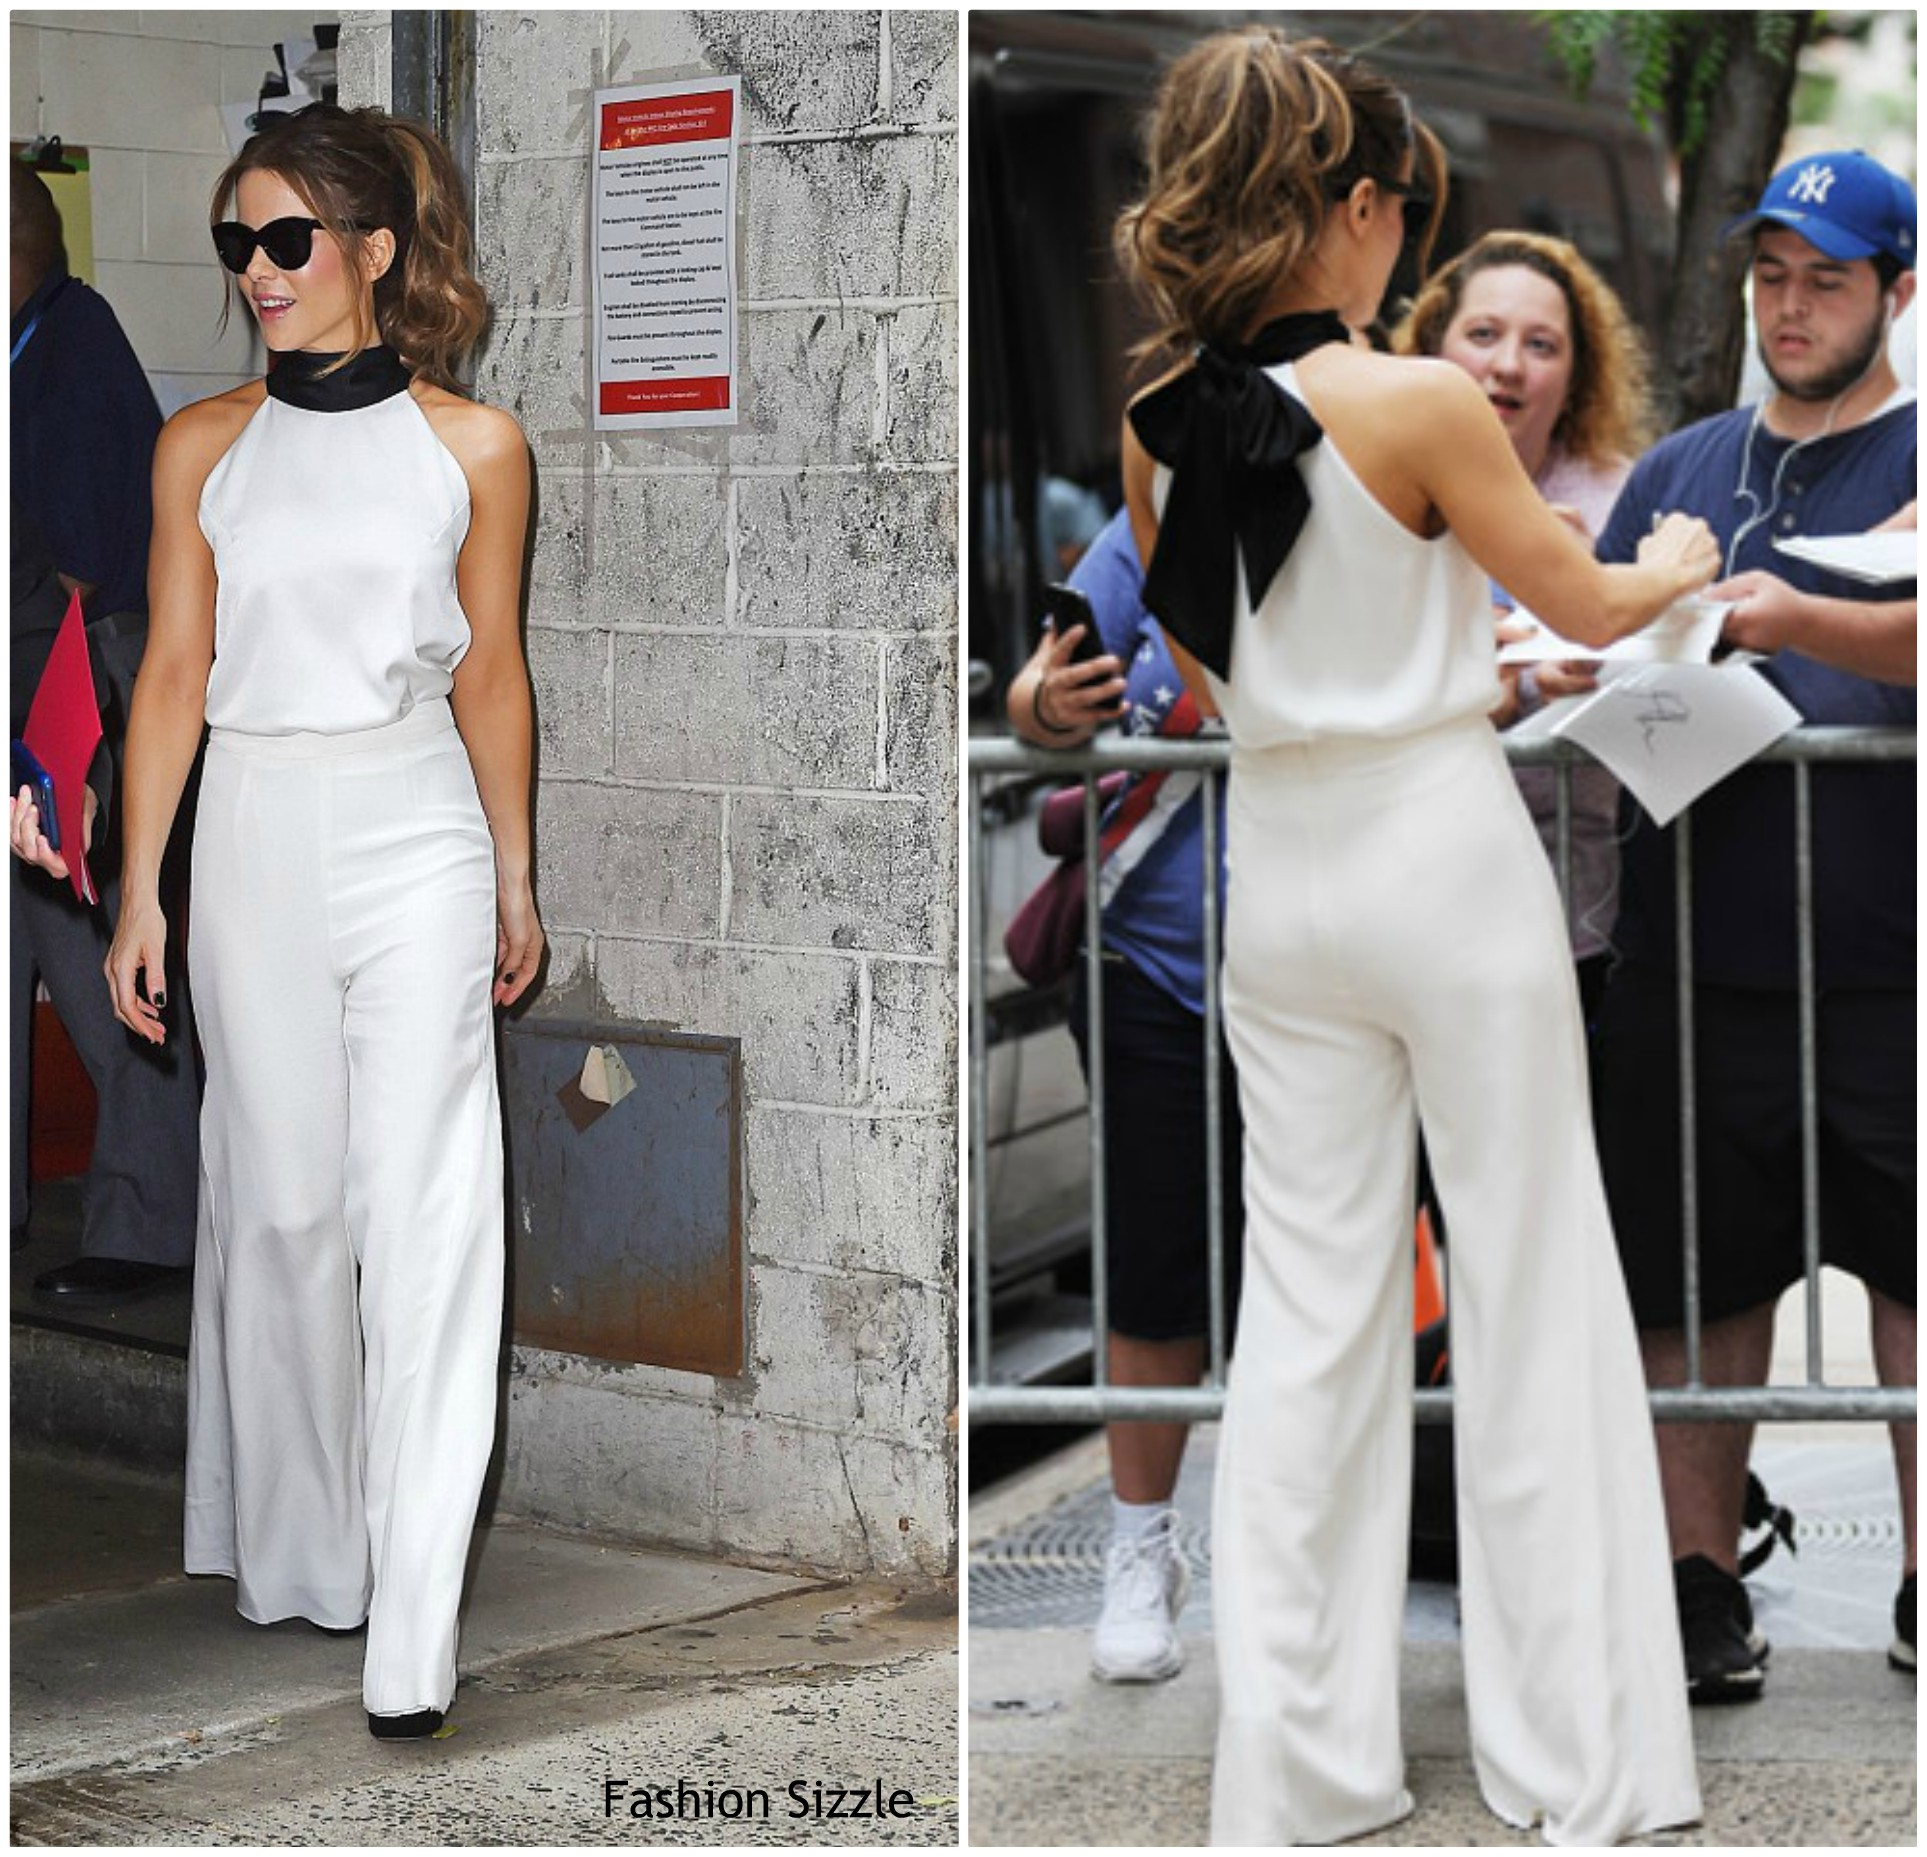 kate-beckinsale-in-galvin-live-with-kelly-ryan